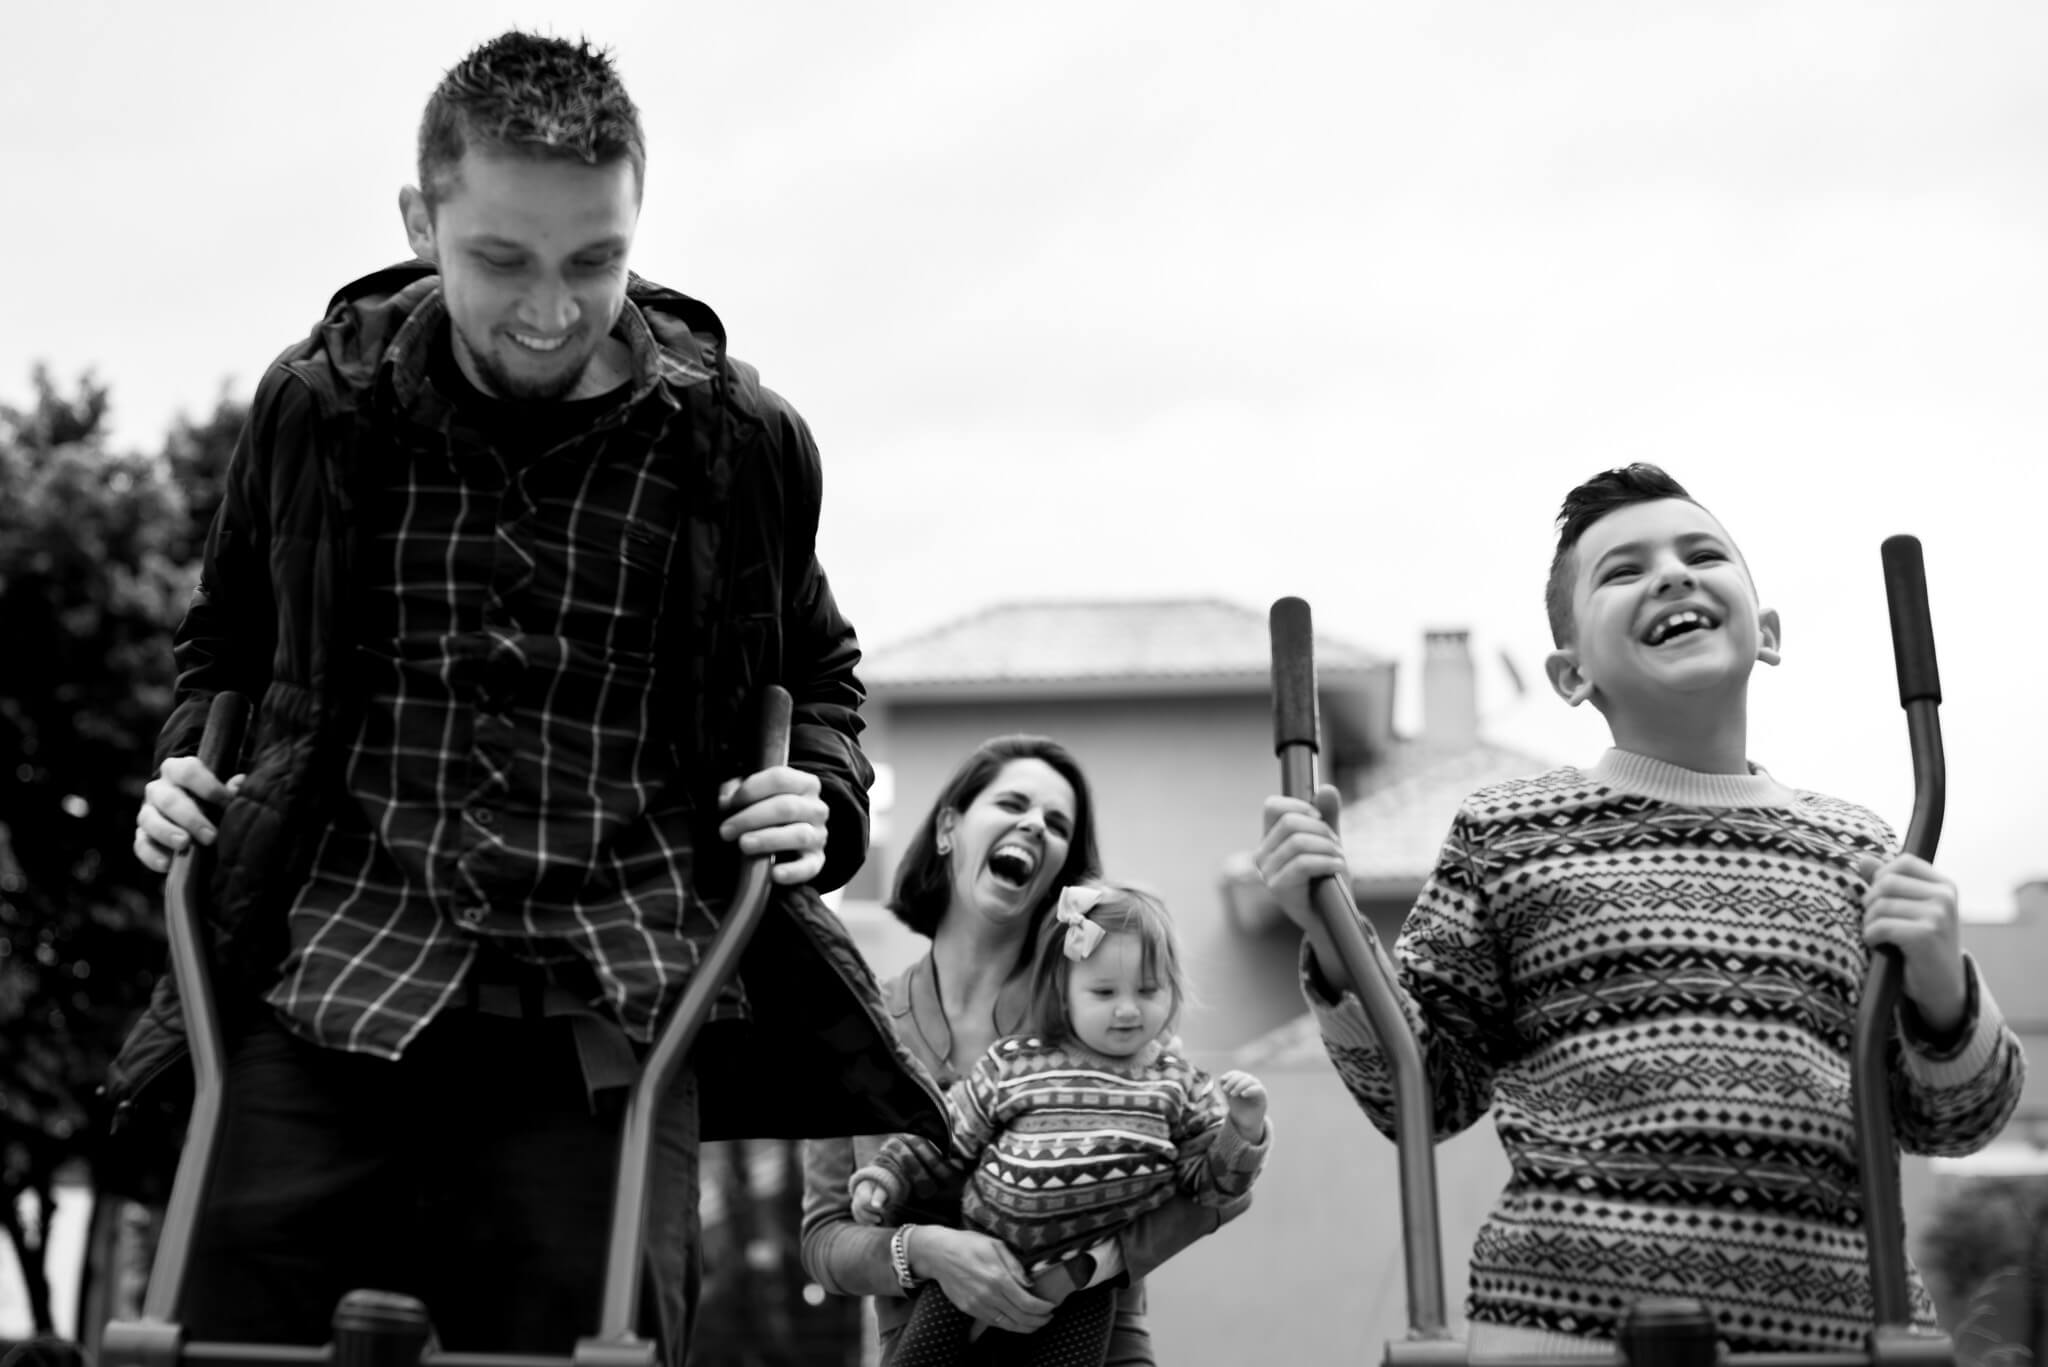 Family photographer London. Lifestyle and documentary family photographer: pregnancy, birth, newborn, baby, child, vacation and children's parties photography. Natural light candid family documentary photography at home or outdoors in London.